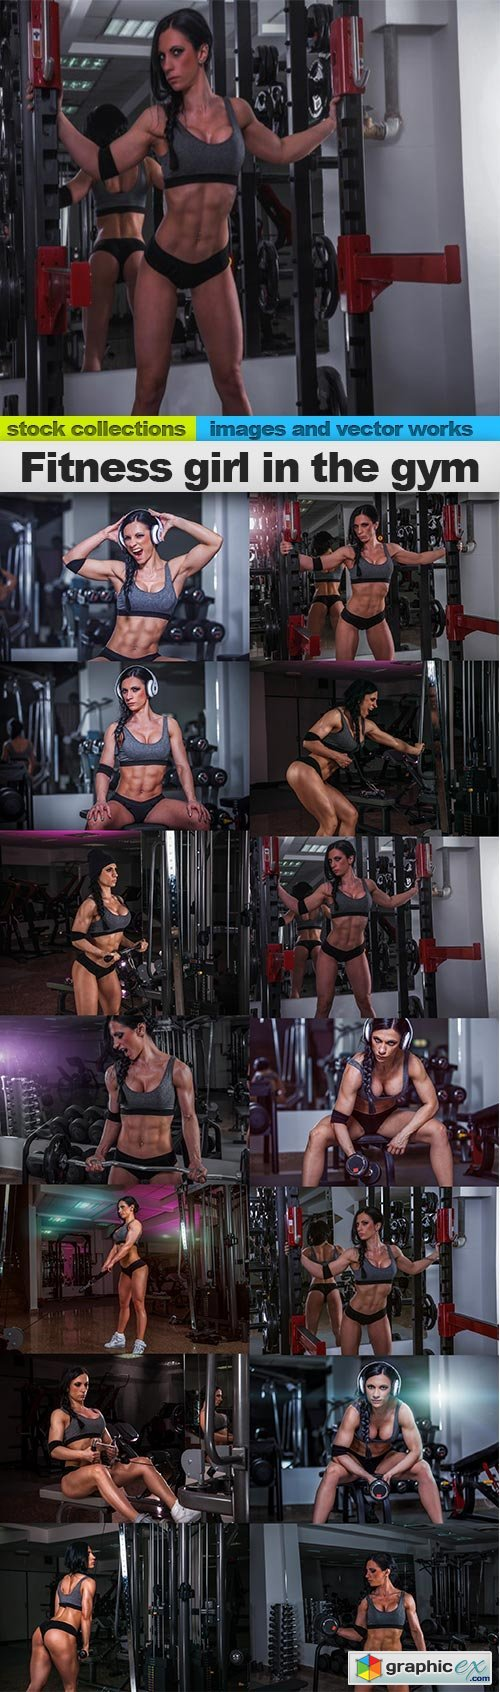 Fitness girl in the gym, 14 x UHQ JPEG